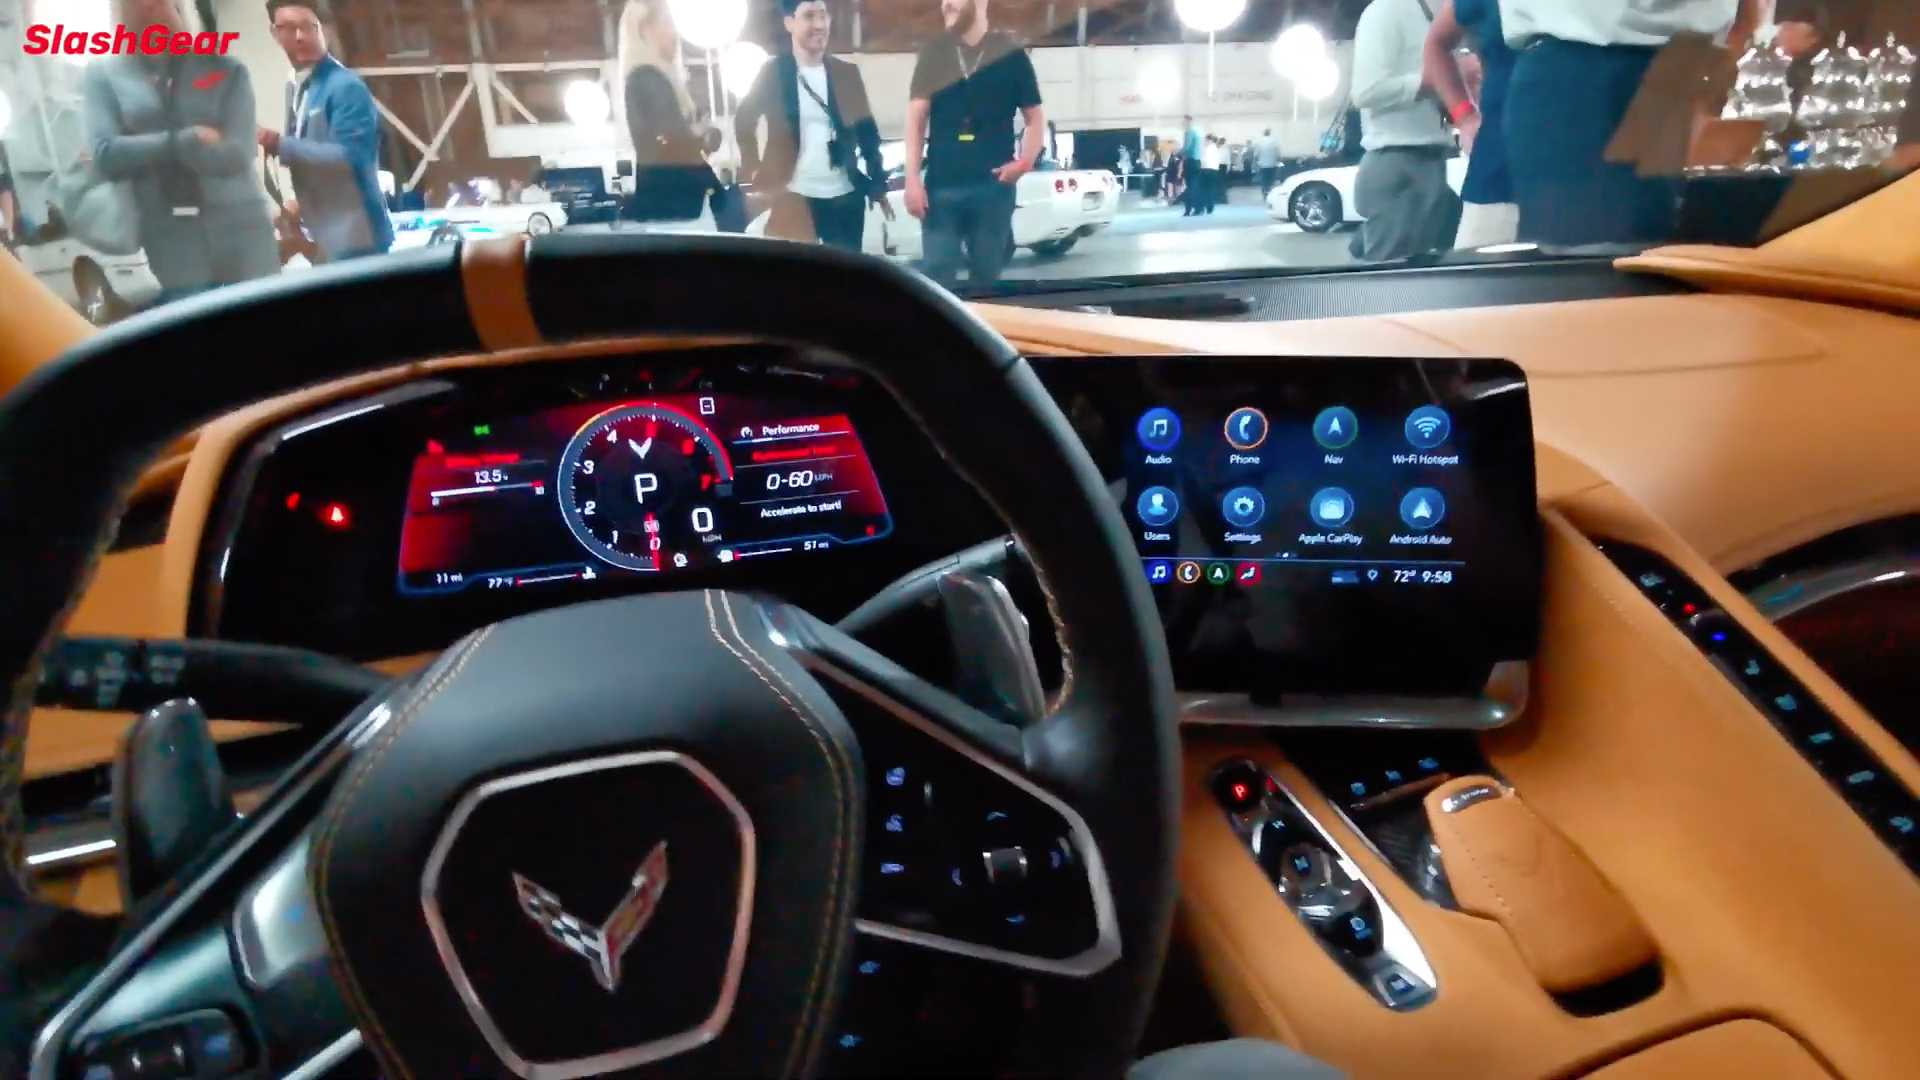 2020 Chevy Corvette C8 Interior Explained By Lead Designer In Video